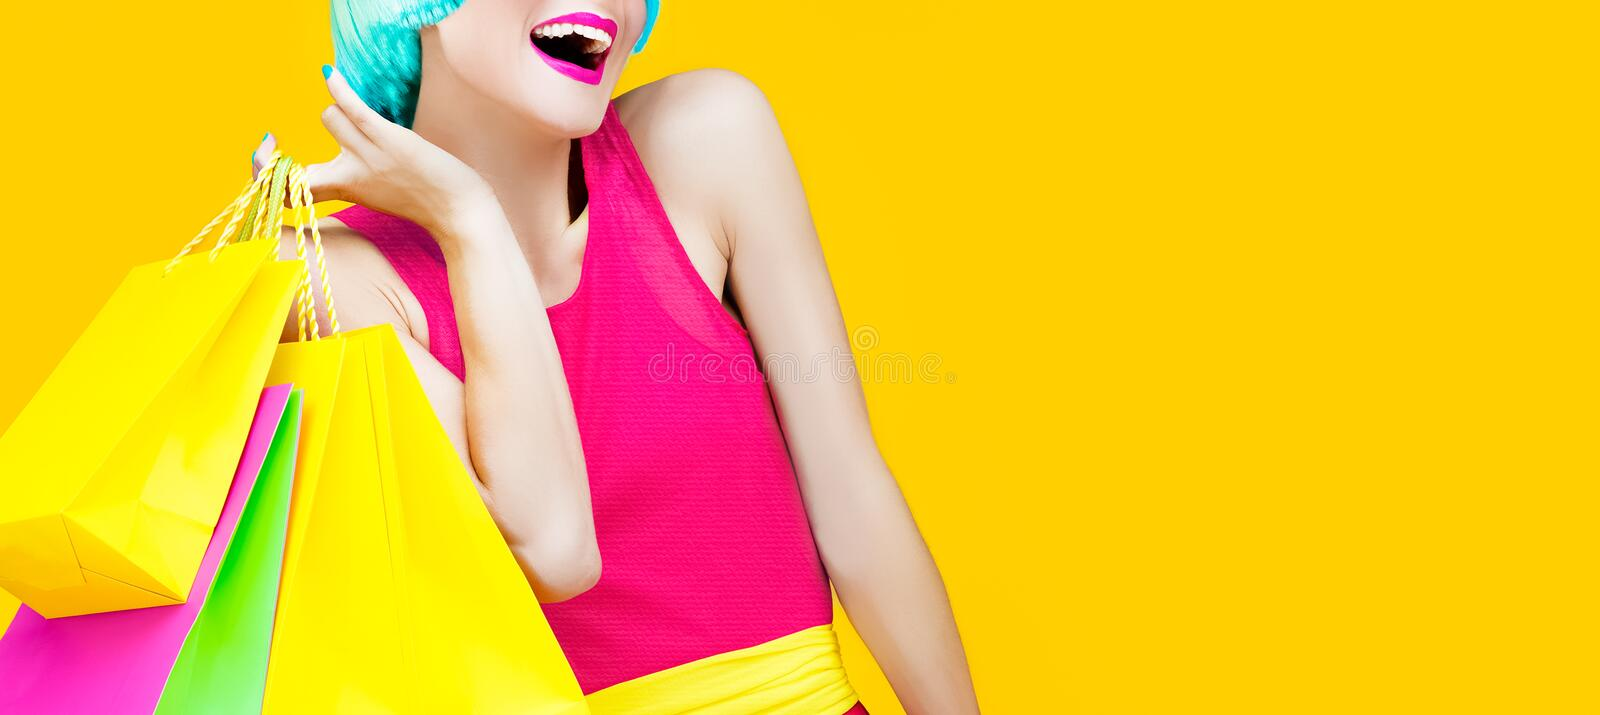 Download Happy shopping lady stock image. Image of fashion, doll - 44645361